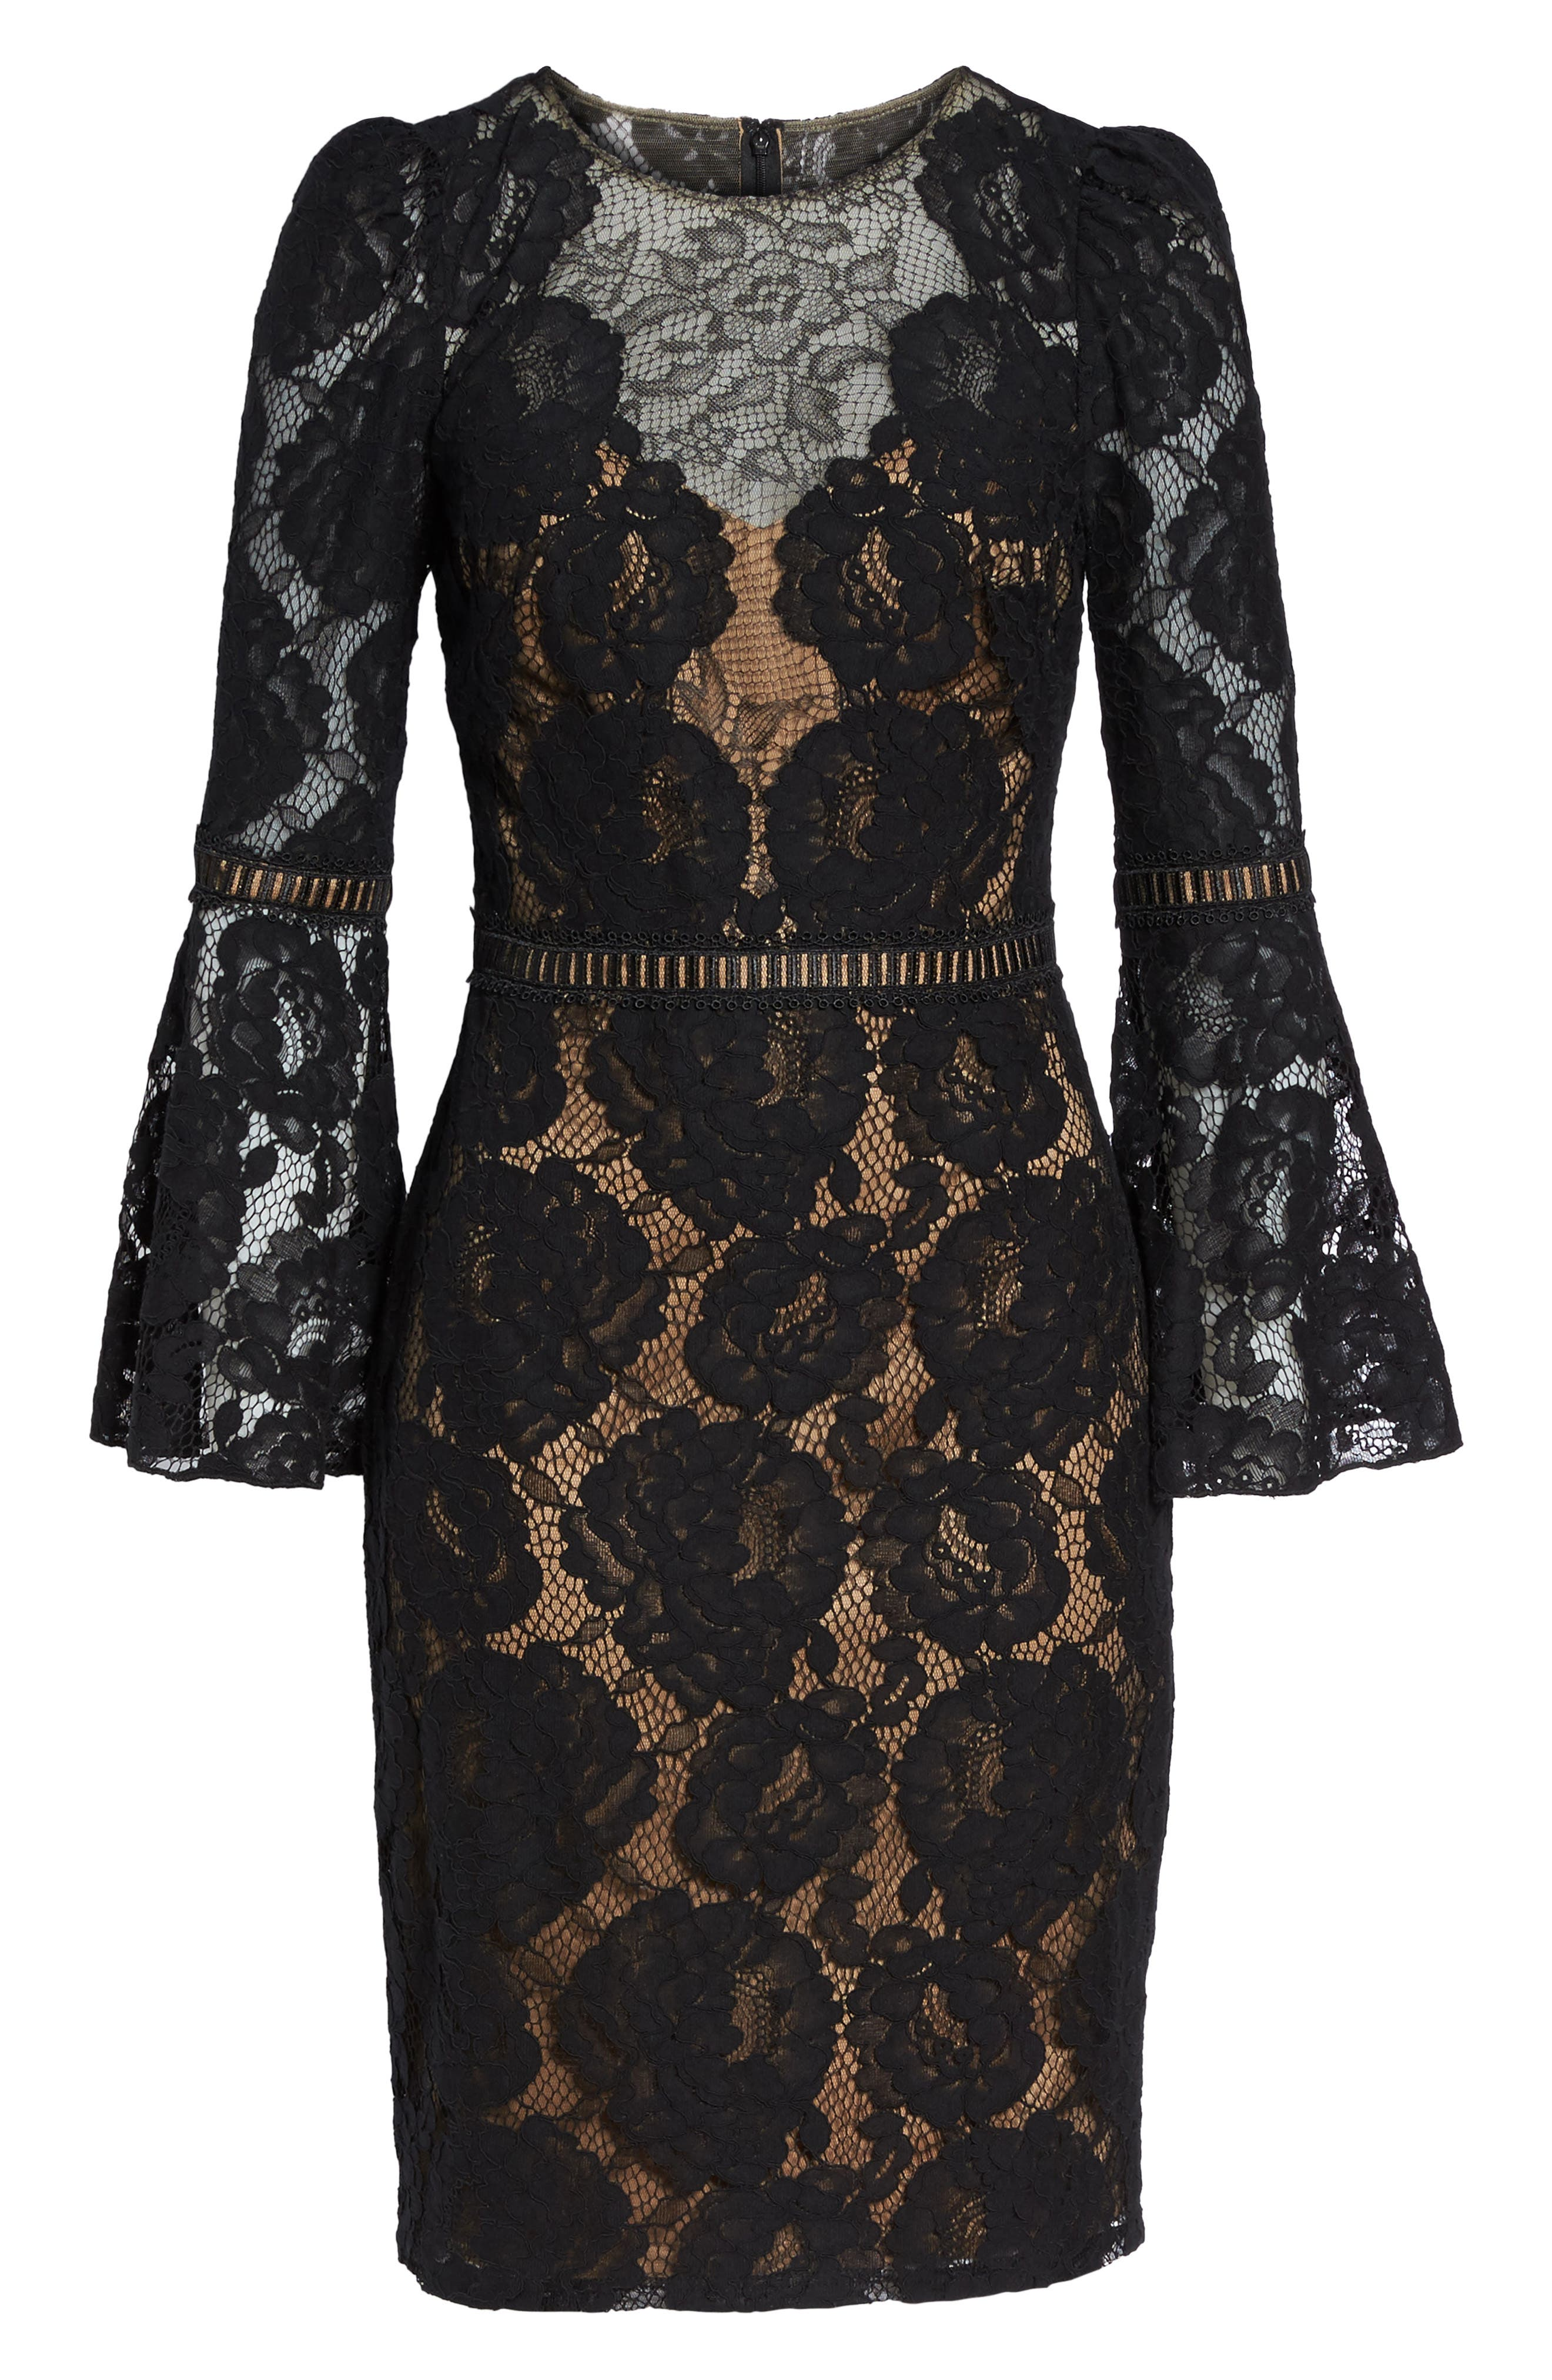 Lace Bell Sleeve Dress,                             Alternate thumbnail 6, color,                             Black/ Nude